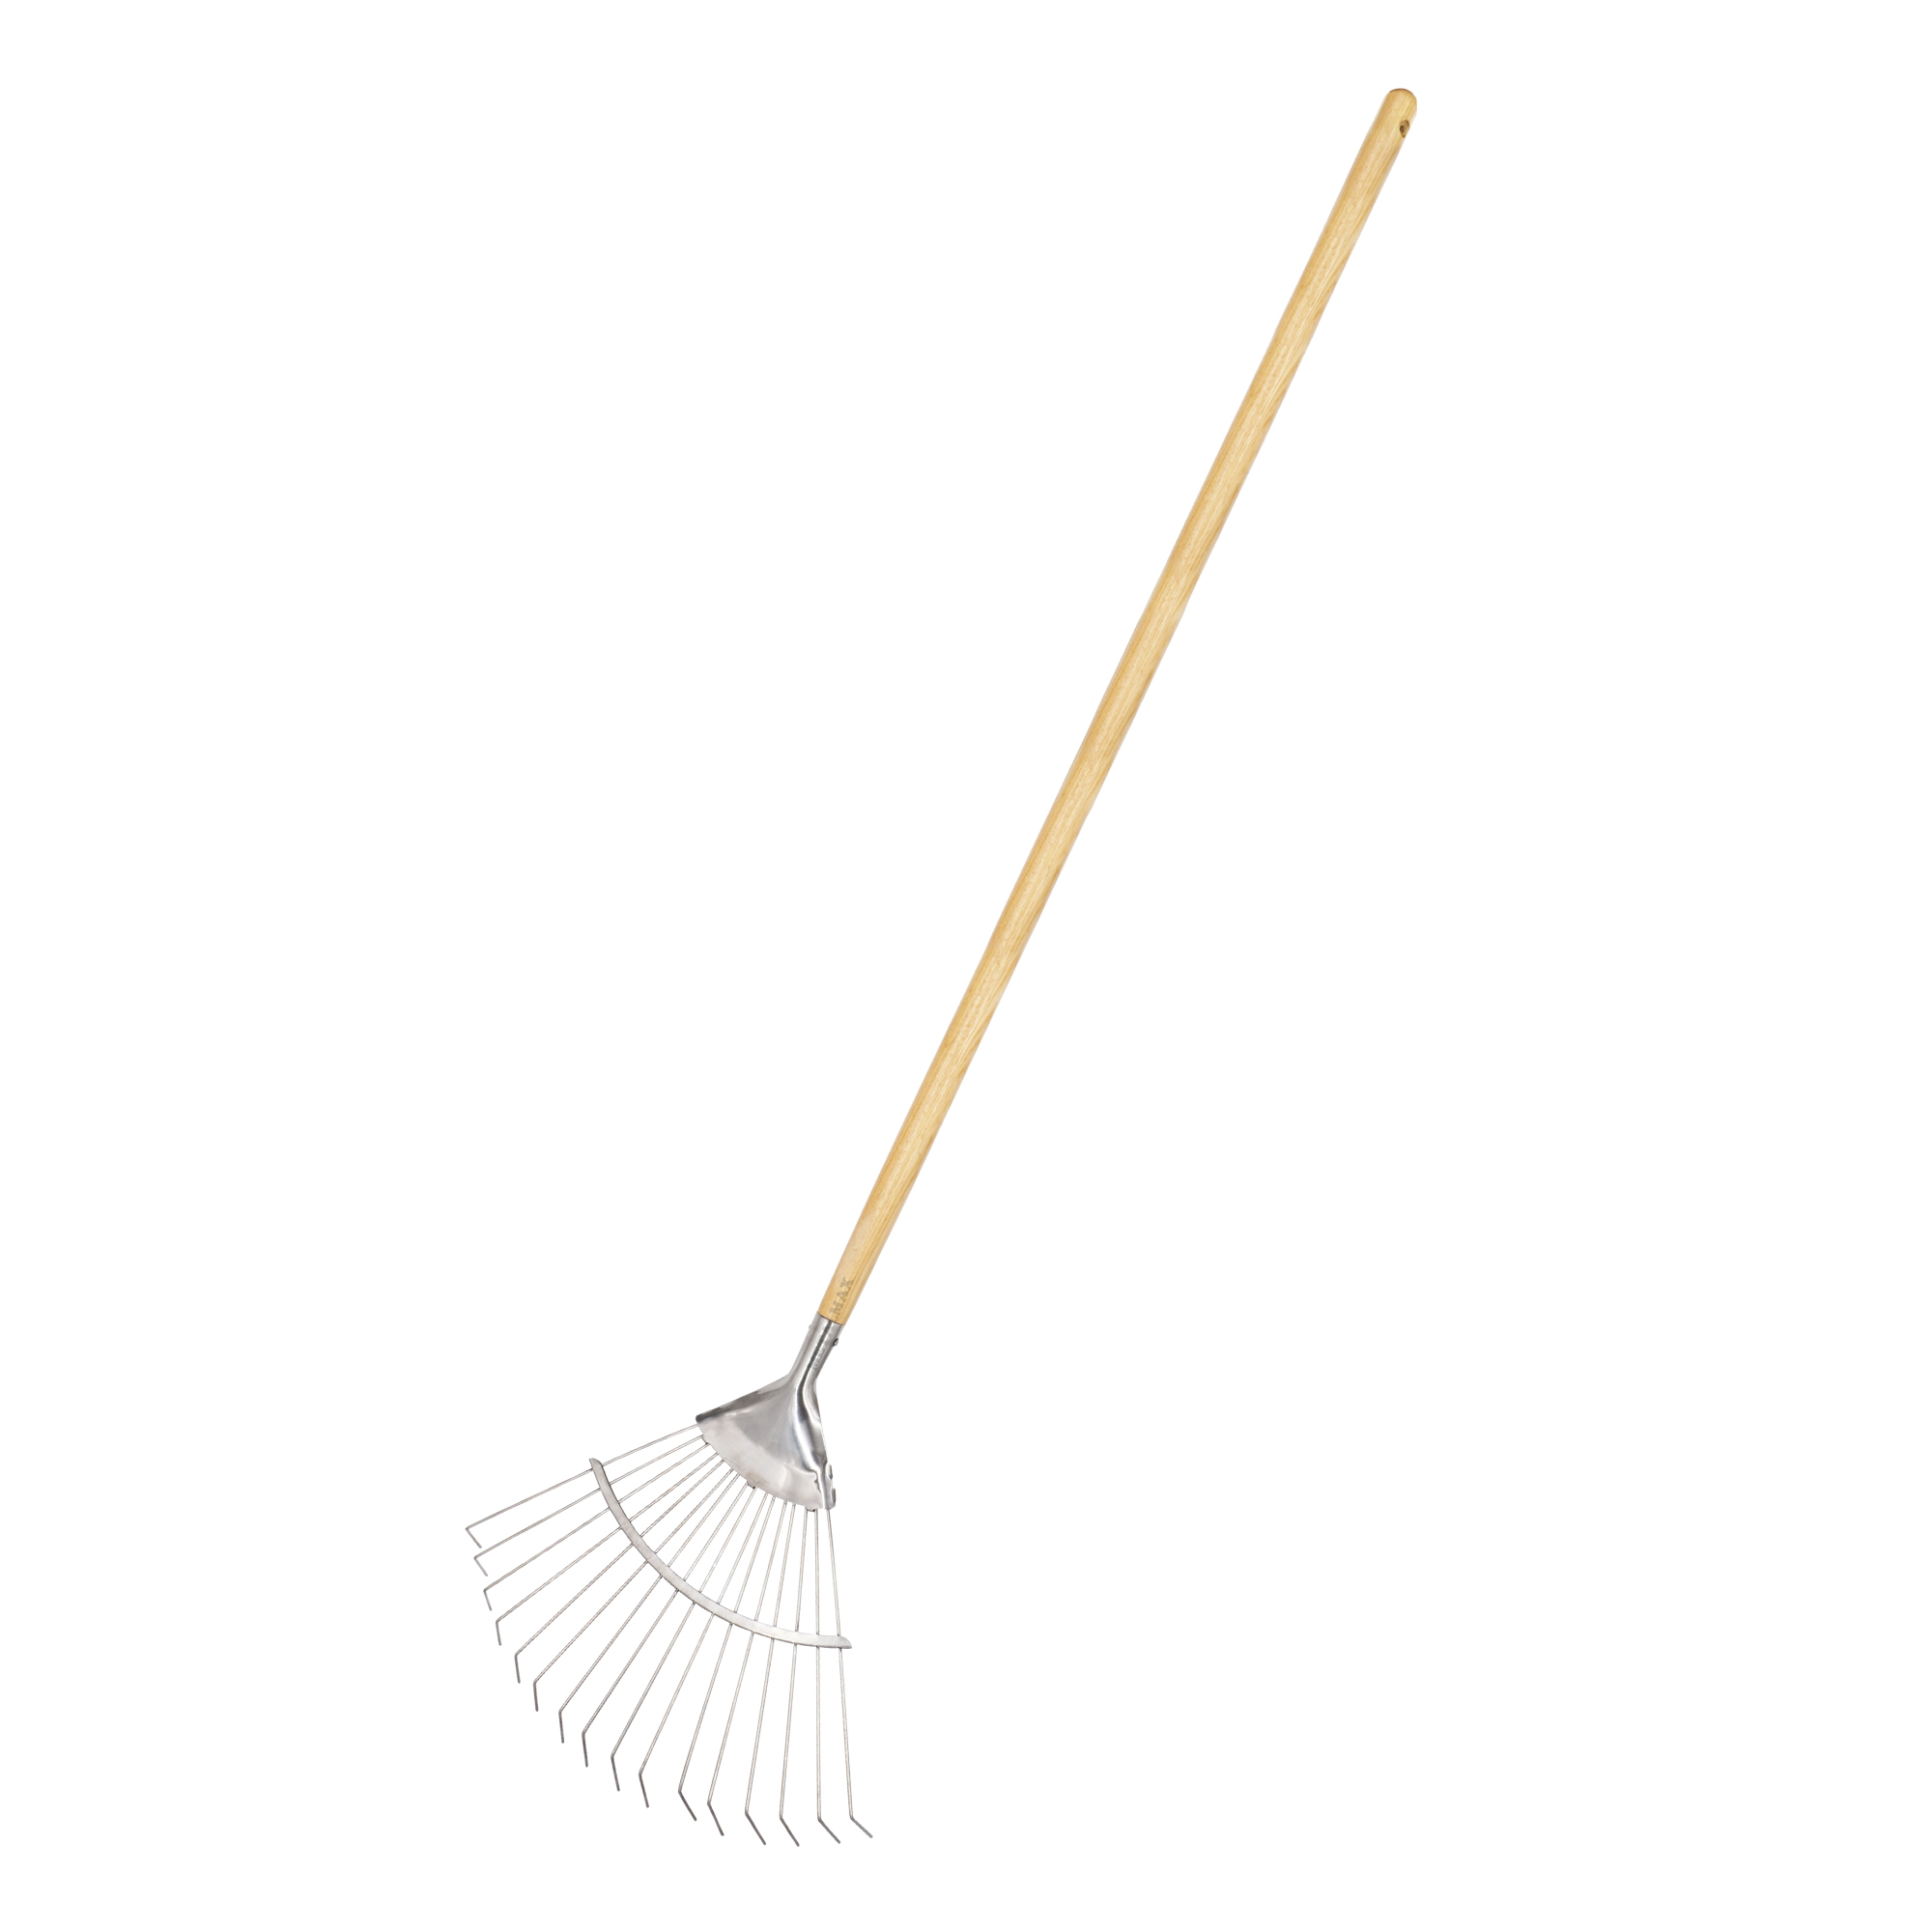 stainless steel long handled lawn leaf rake